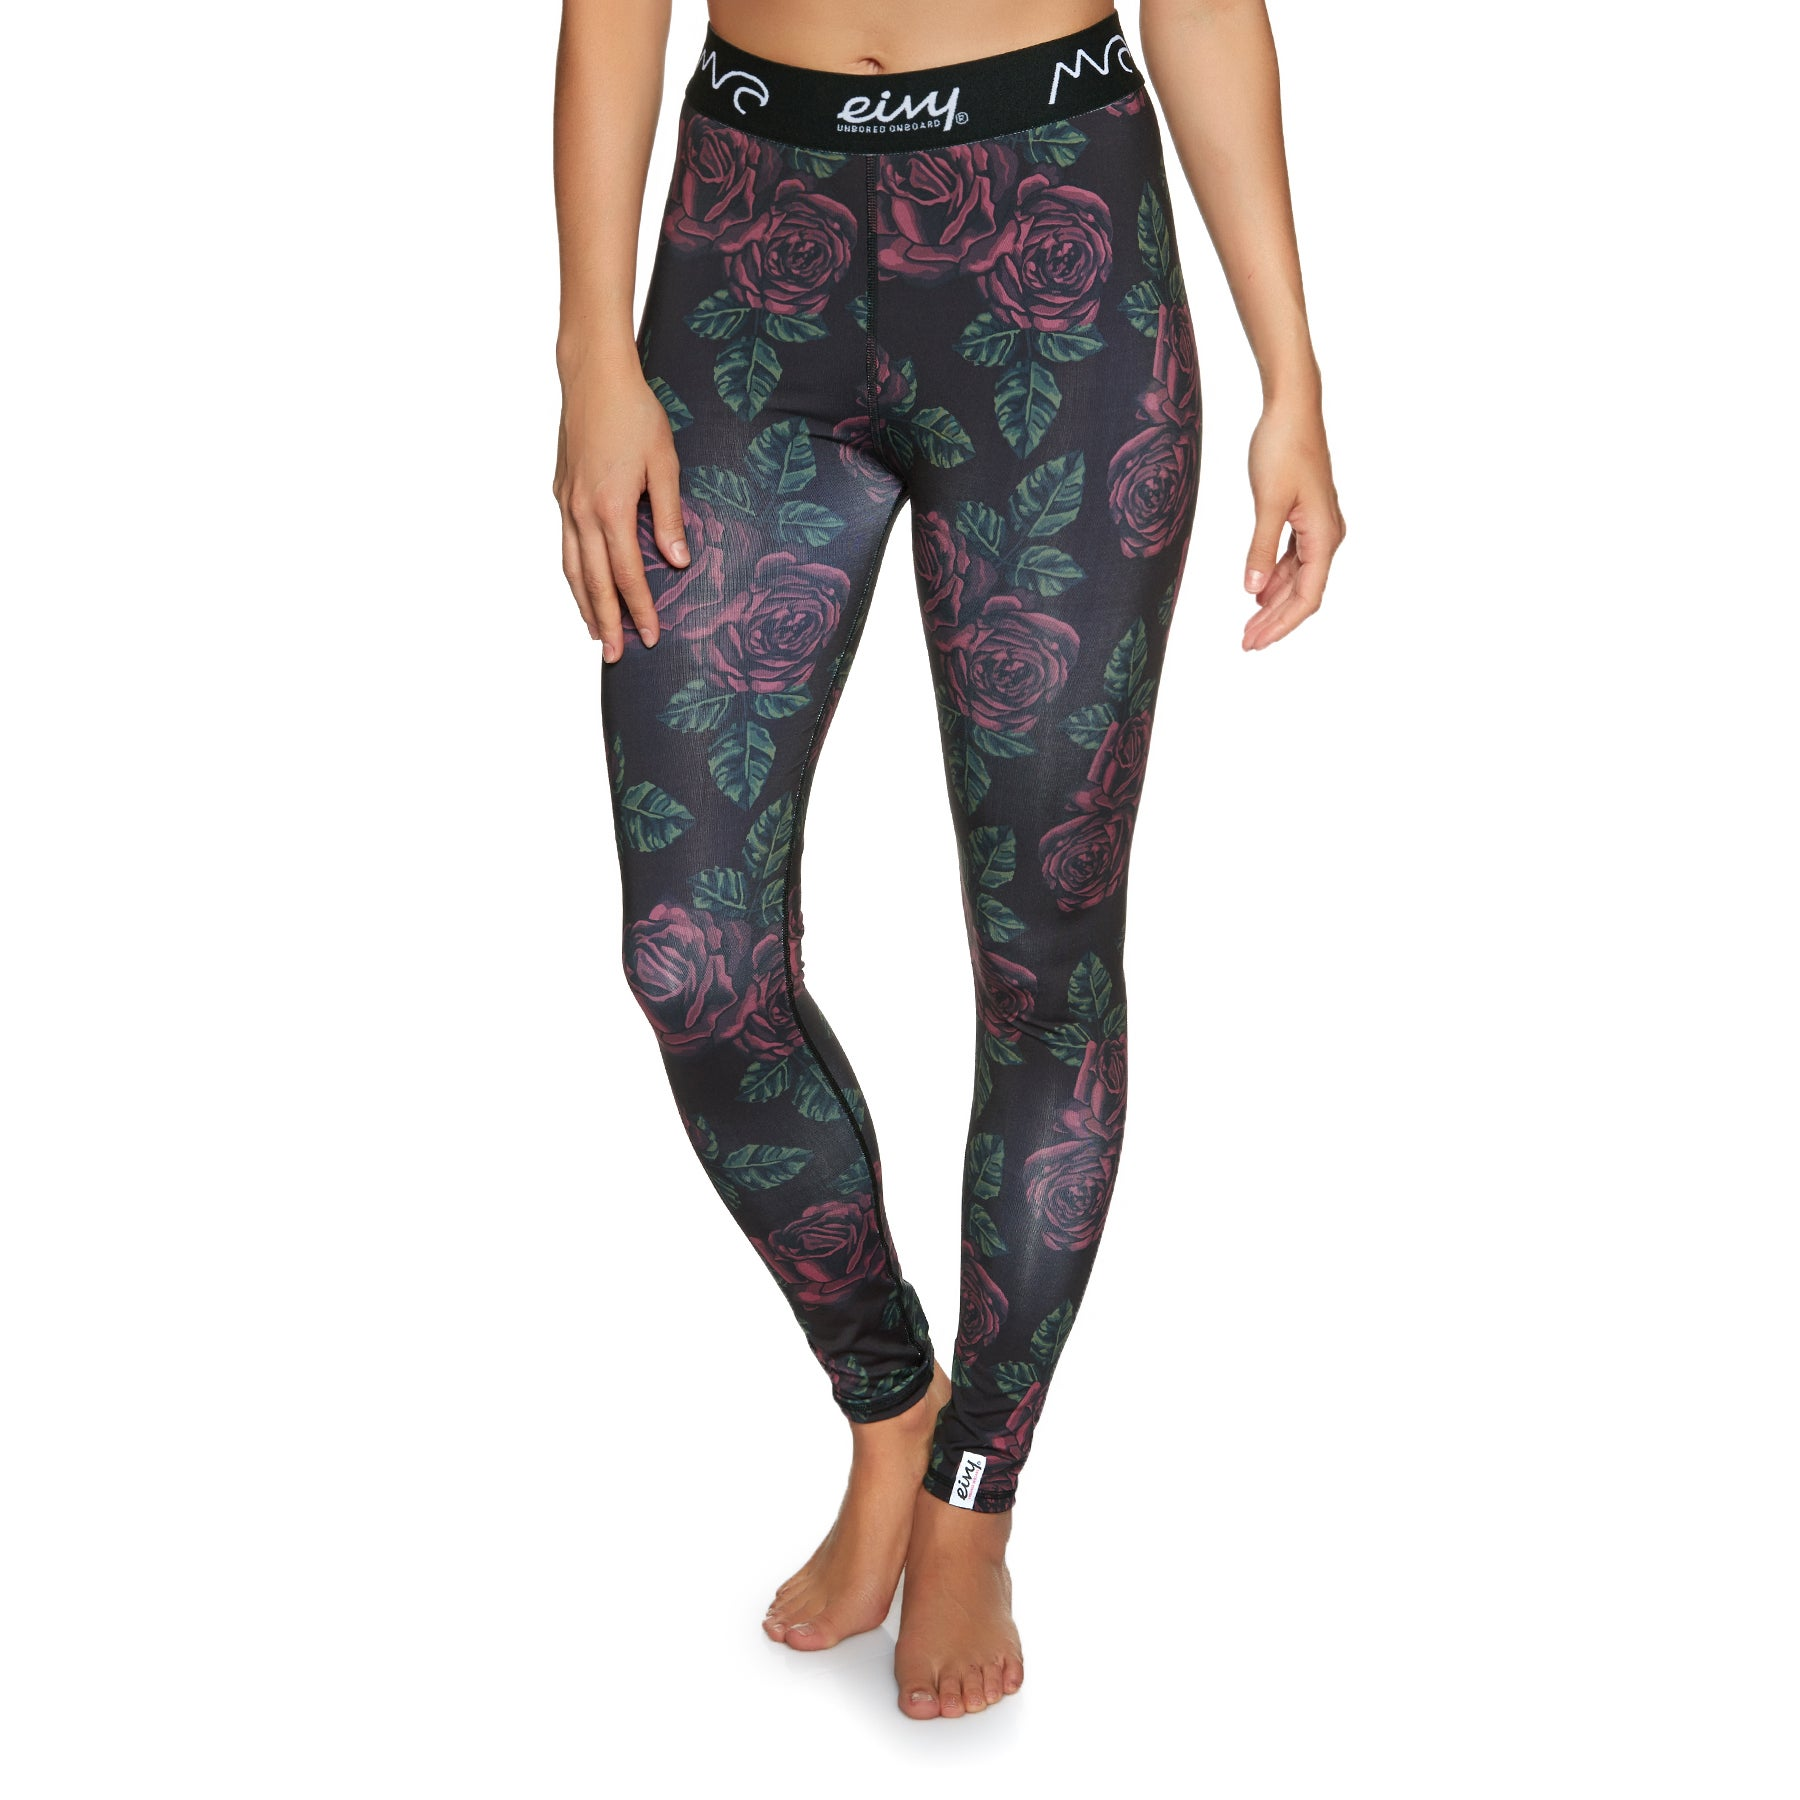 Eivy Icecold Bl Orchard L Base Layer Leggings - Orchard